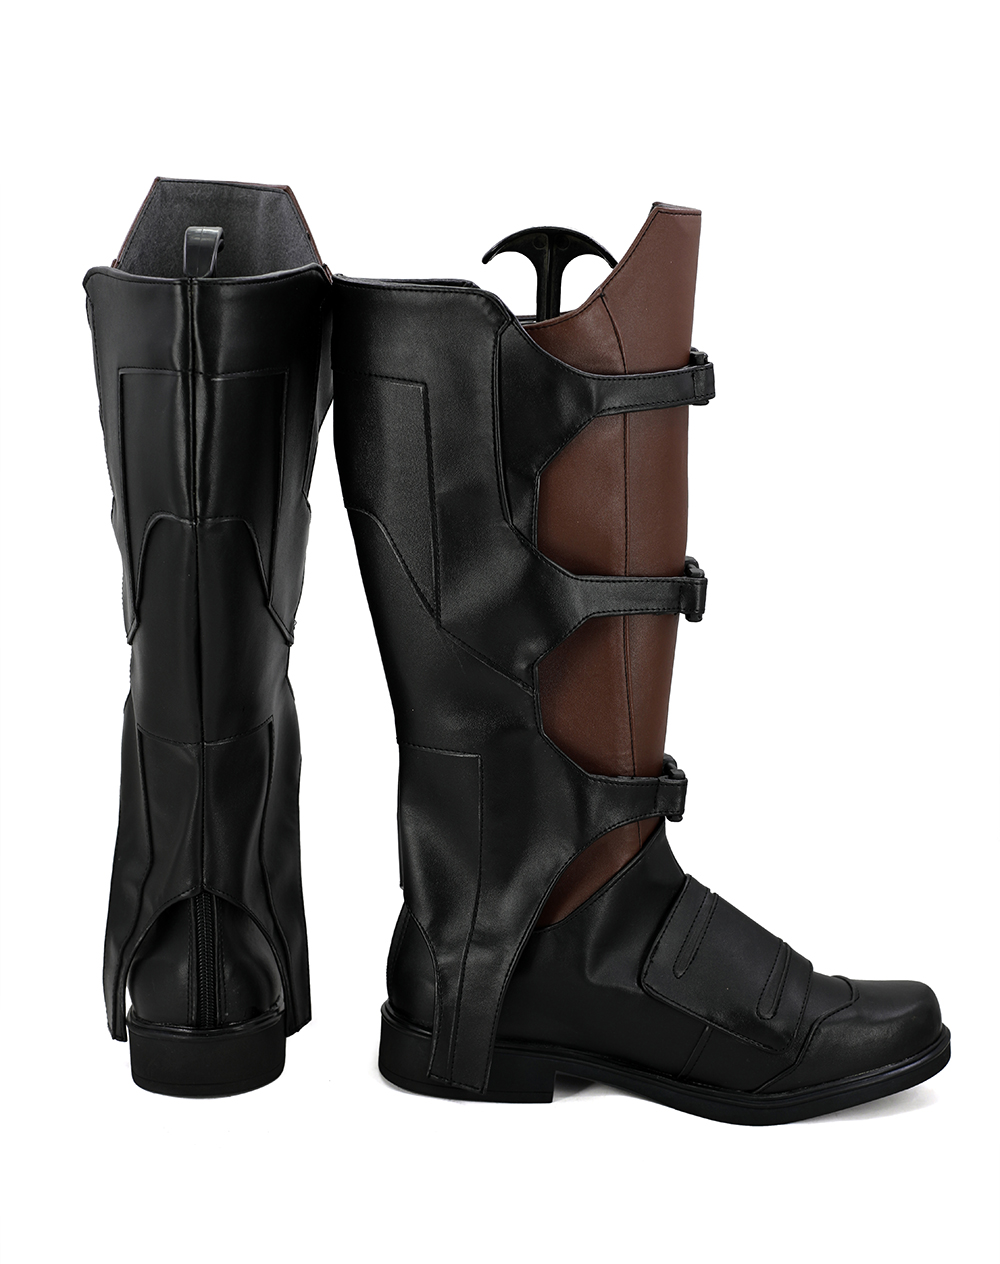 Guardians of The Galaxy Star Lord Peter Quill Cosplay Boots Shoes Custom Made Halloween Makeup